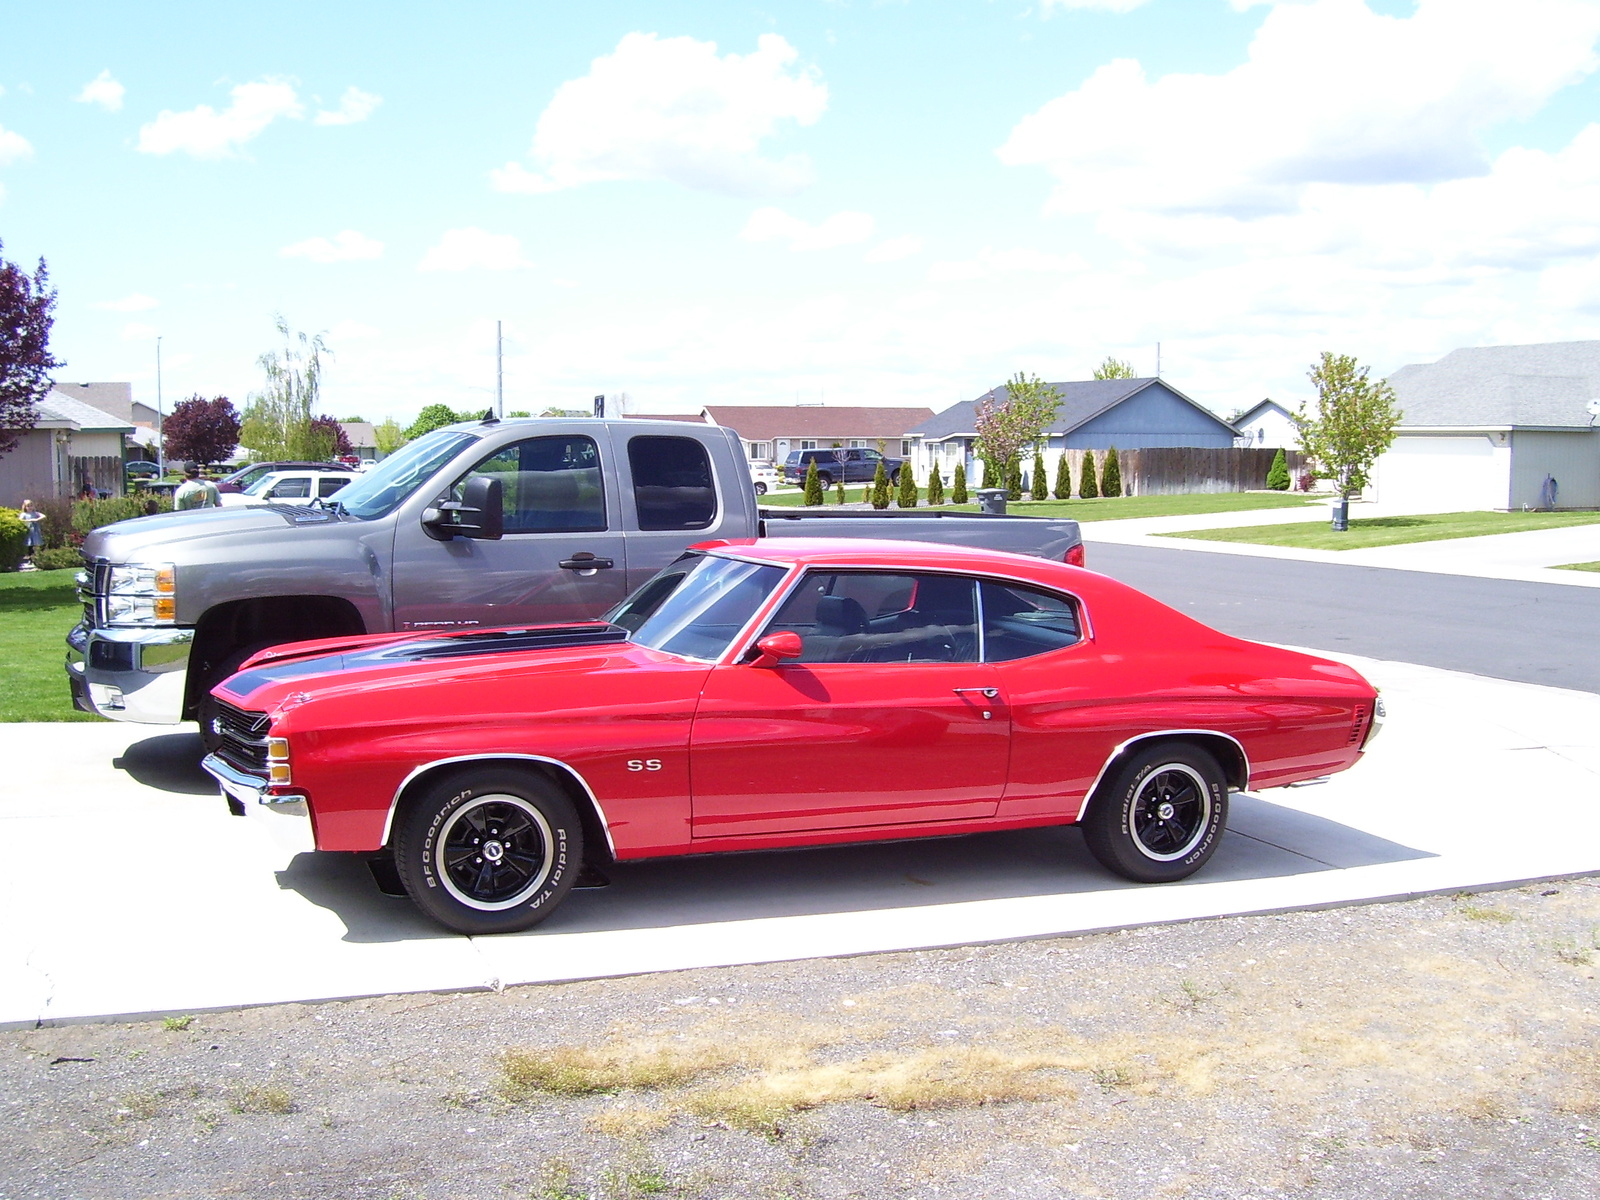 Nada Classic Cars >> Chevrolet Chevelle Questions - Value of my 1971 SS Chevelle w/350 - CarGurus